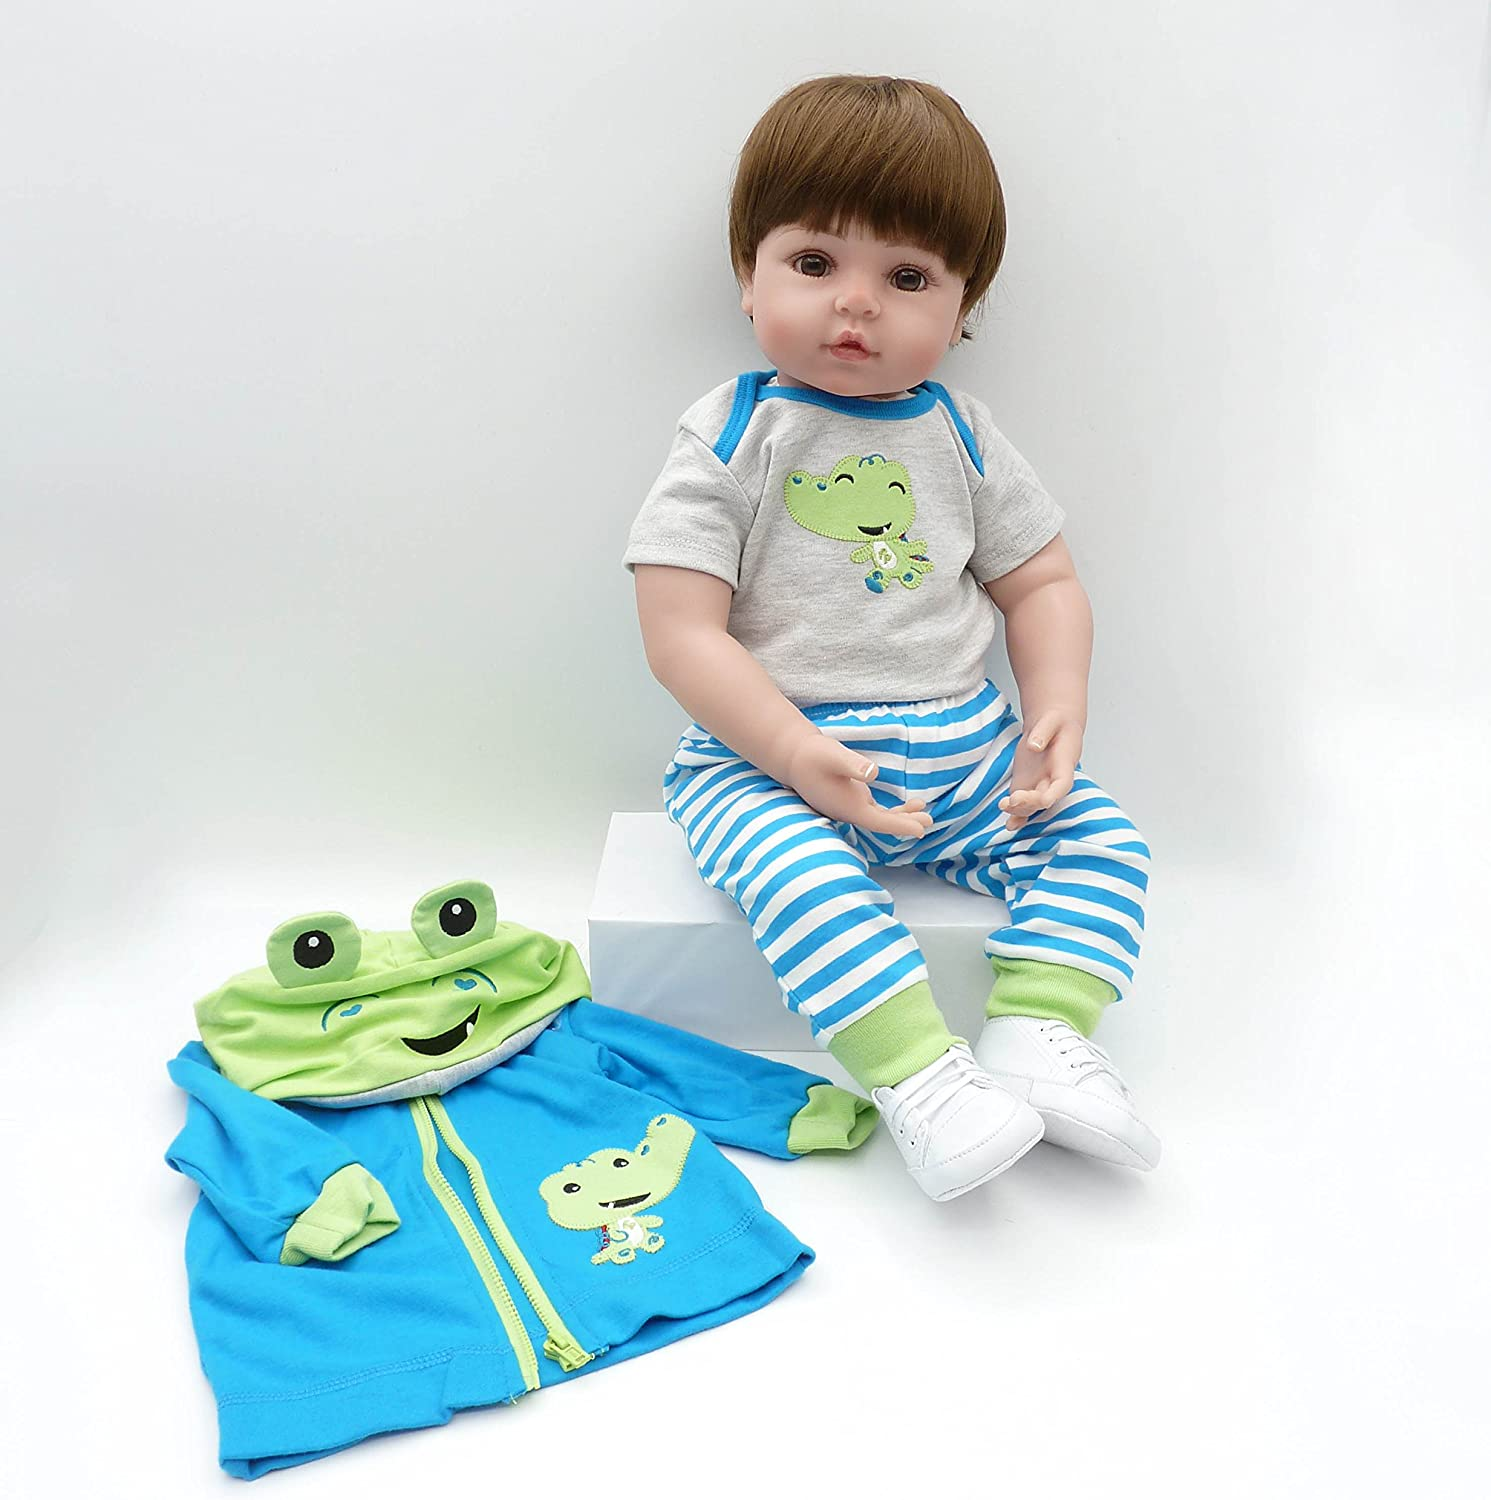 HUADOLL Reborn Baby Dolls Clothes 22 inch Boy Outfits Accesories for 22-24 inch Reborn Doll Newborn Blue Frog Matching Clothing